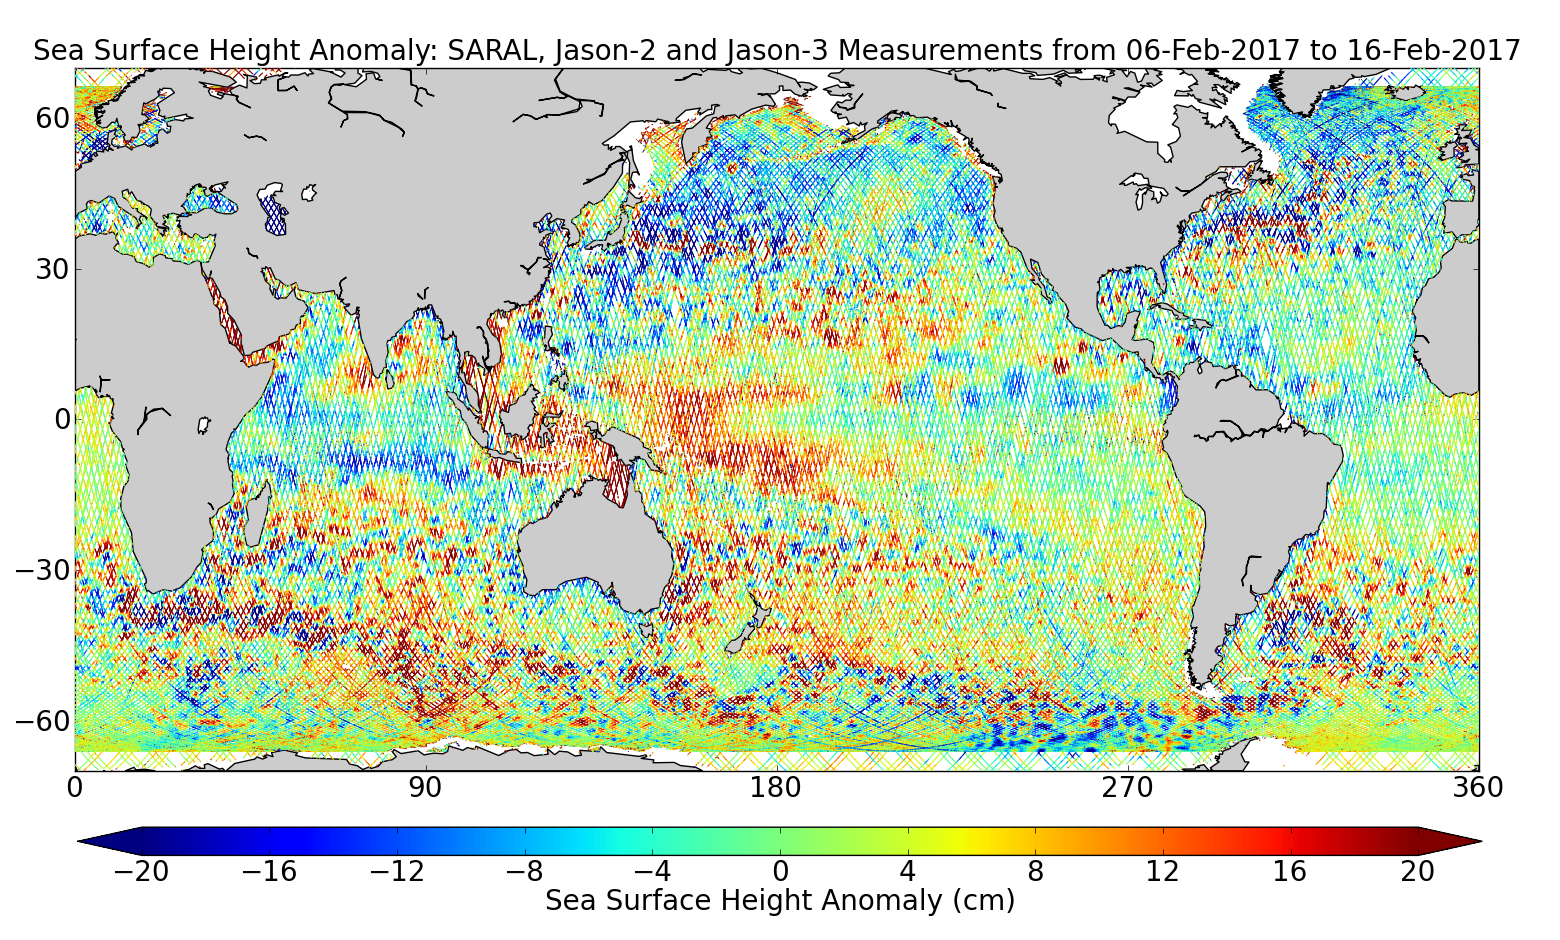 Sea Surface Height Anomaly: SARAL, Jason-2 and Jason-3 Measurements from 06-Feb-2017 to 16-Feb-2017